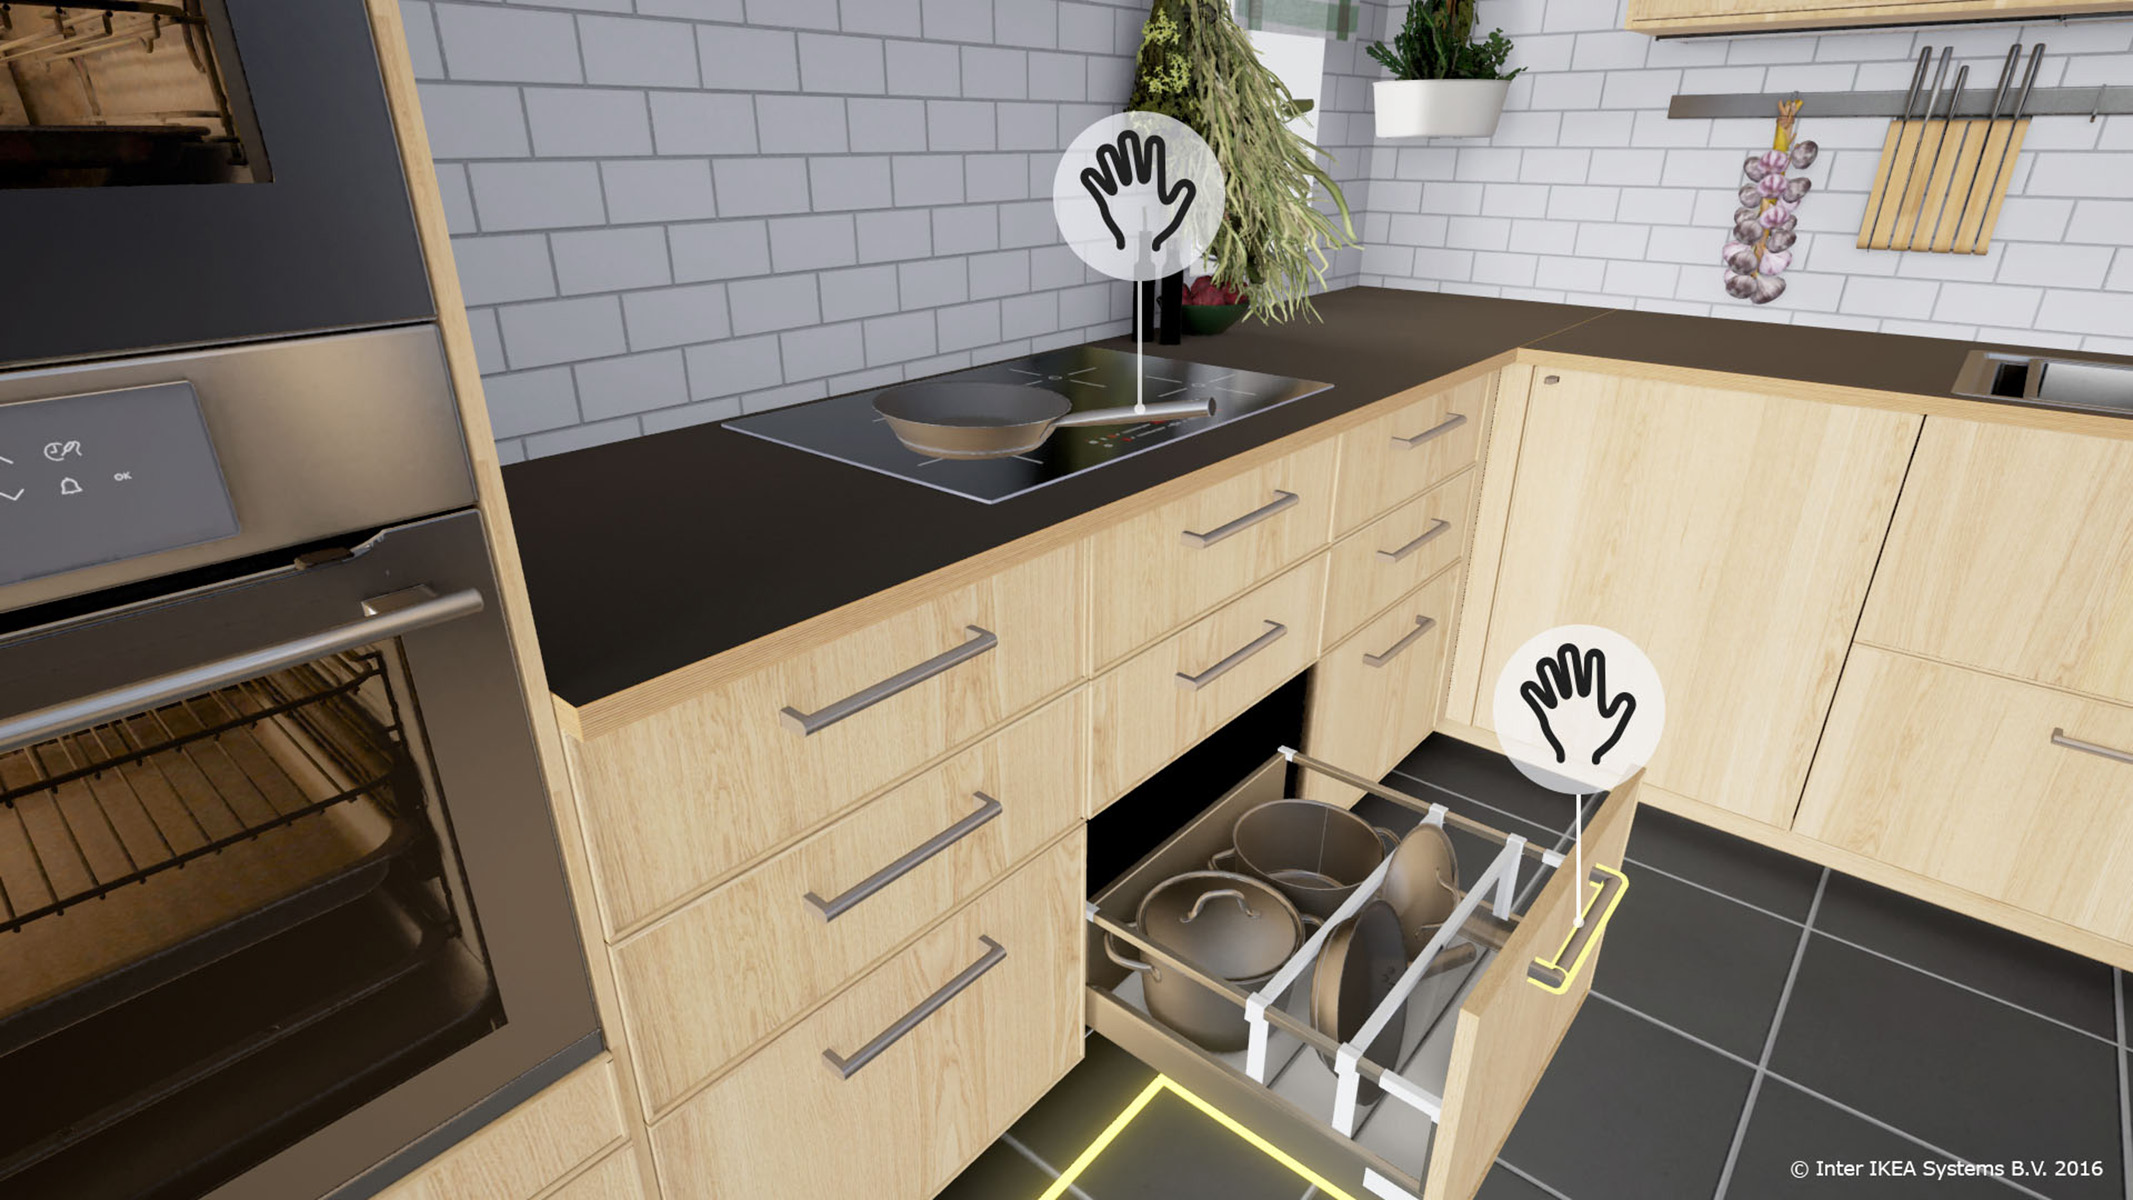 Top Rated Kitchen Design App Ikea Brings Kitchen Design To Virtual Reality Vrscout